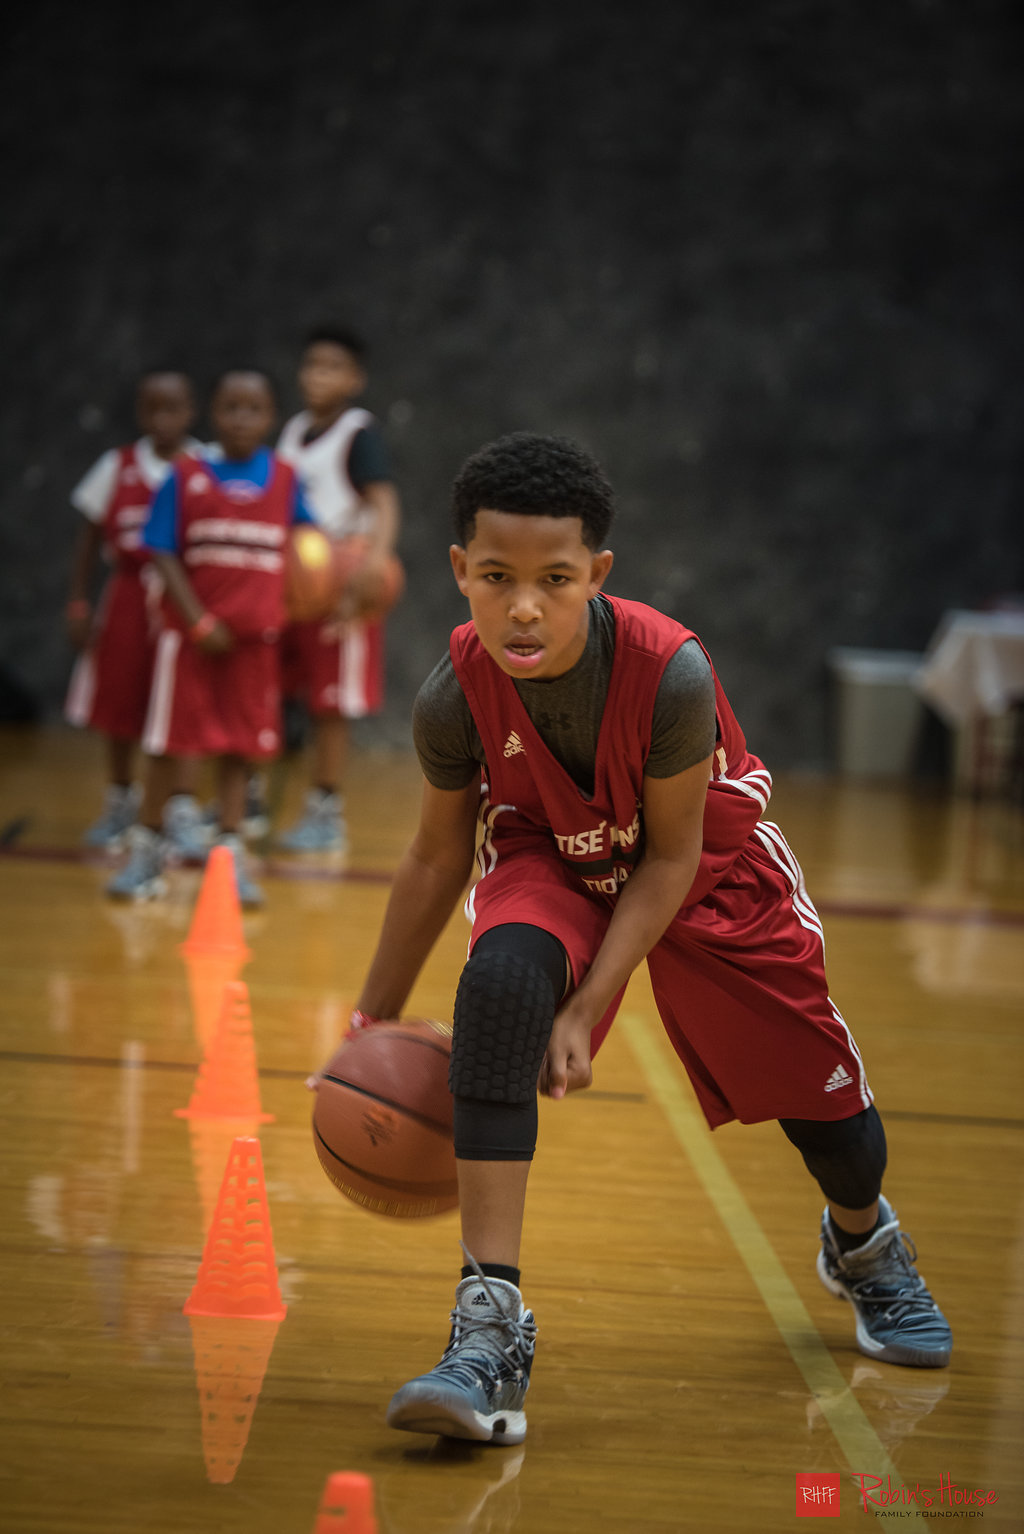 rhff_basketball_clinic_sunday-22.jpg